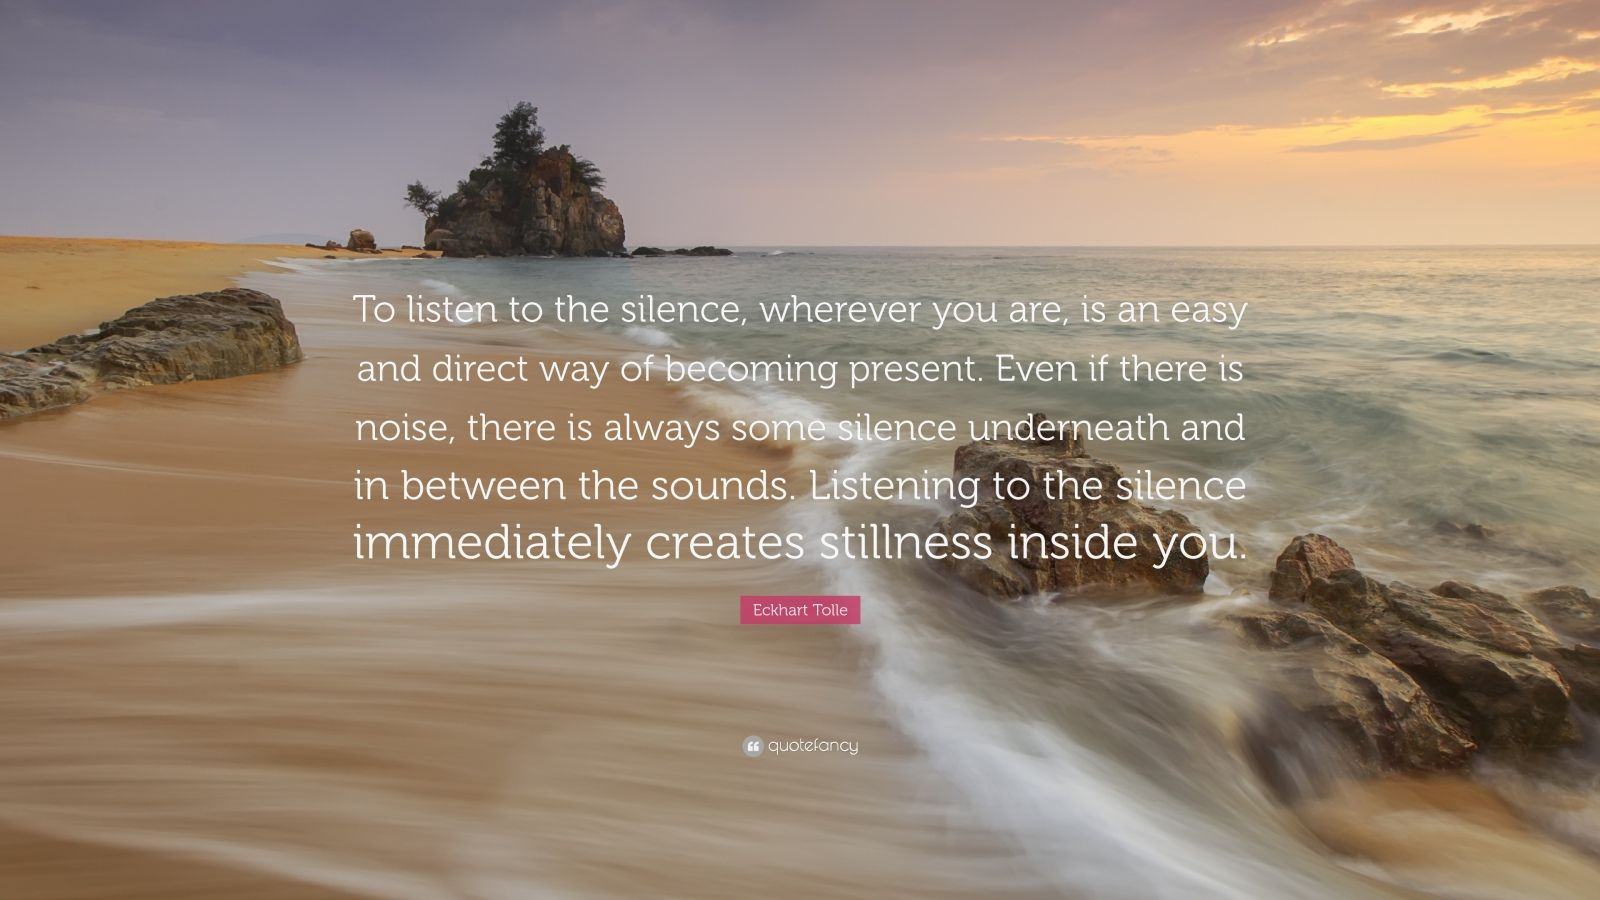 "Eckhart Tolle Quote: ""To listen to the silence, wherever you are, is an easy and direct way of becoming present. Even if there is noise, there is always some silence underneath and in between the sounds. Listening to the silence immediately creates stillness inside you."""